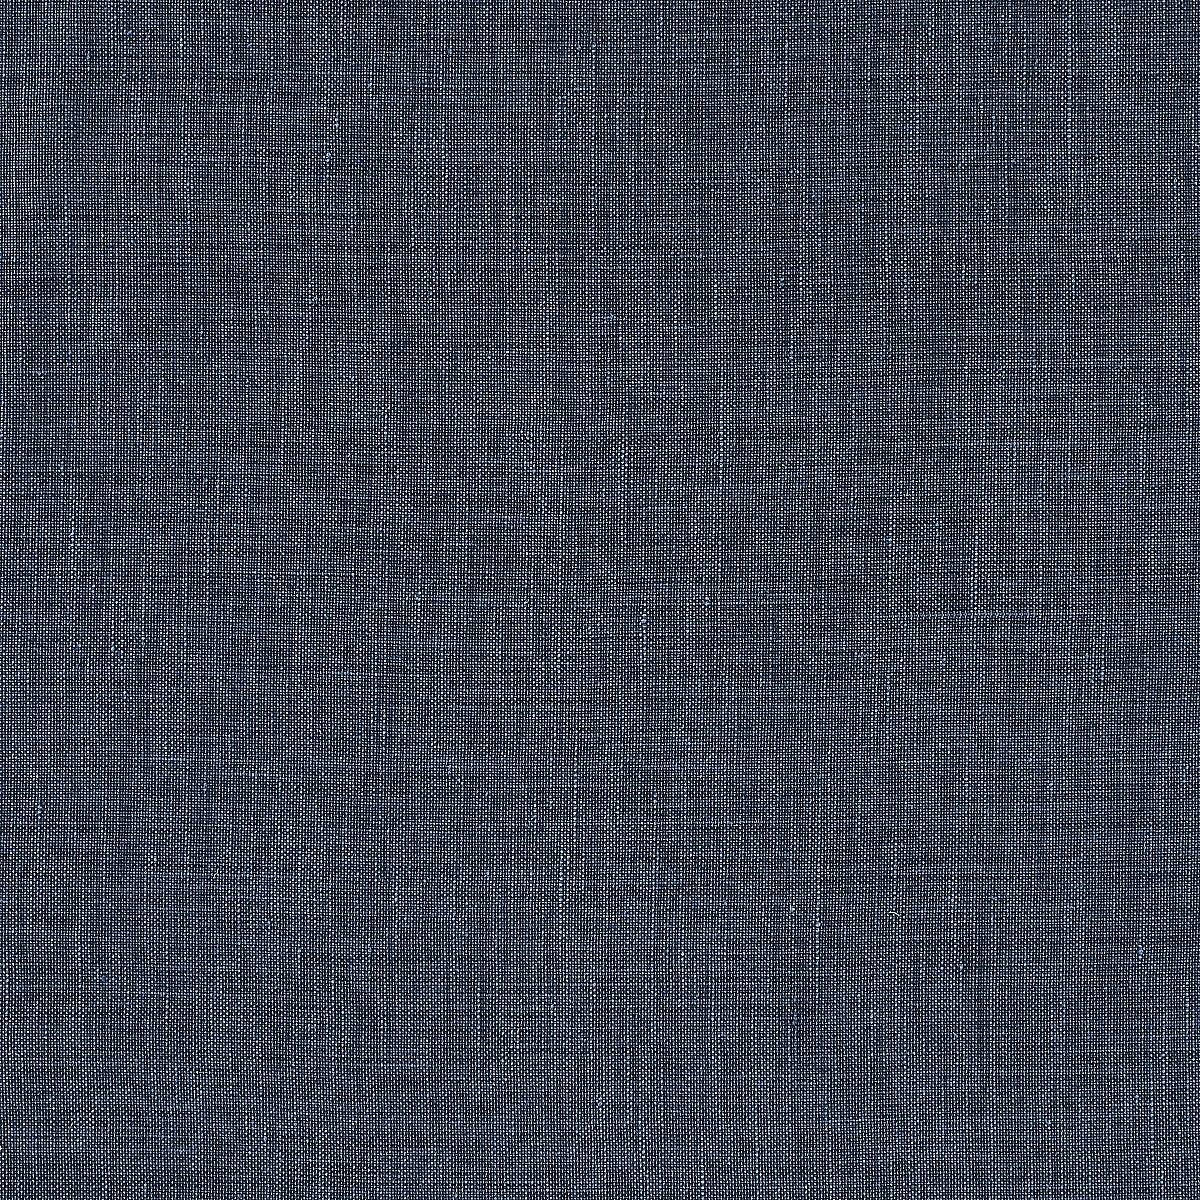 Weathered Linen: Academy (fabric yardage)